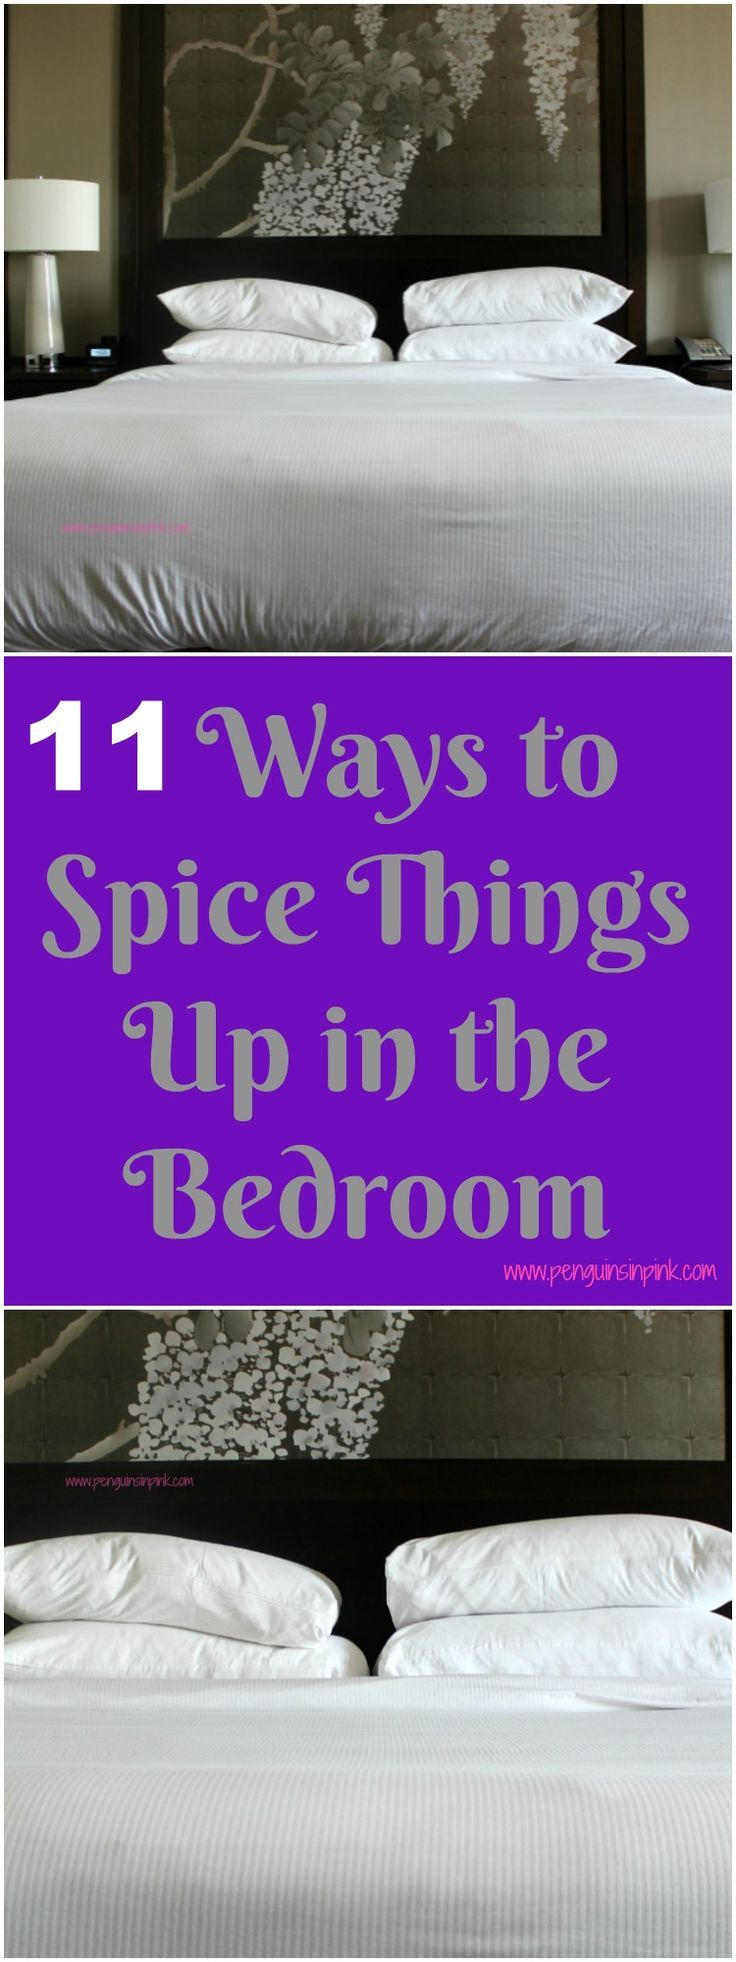 11 ways to spice things up in the bedroom  spice up